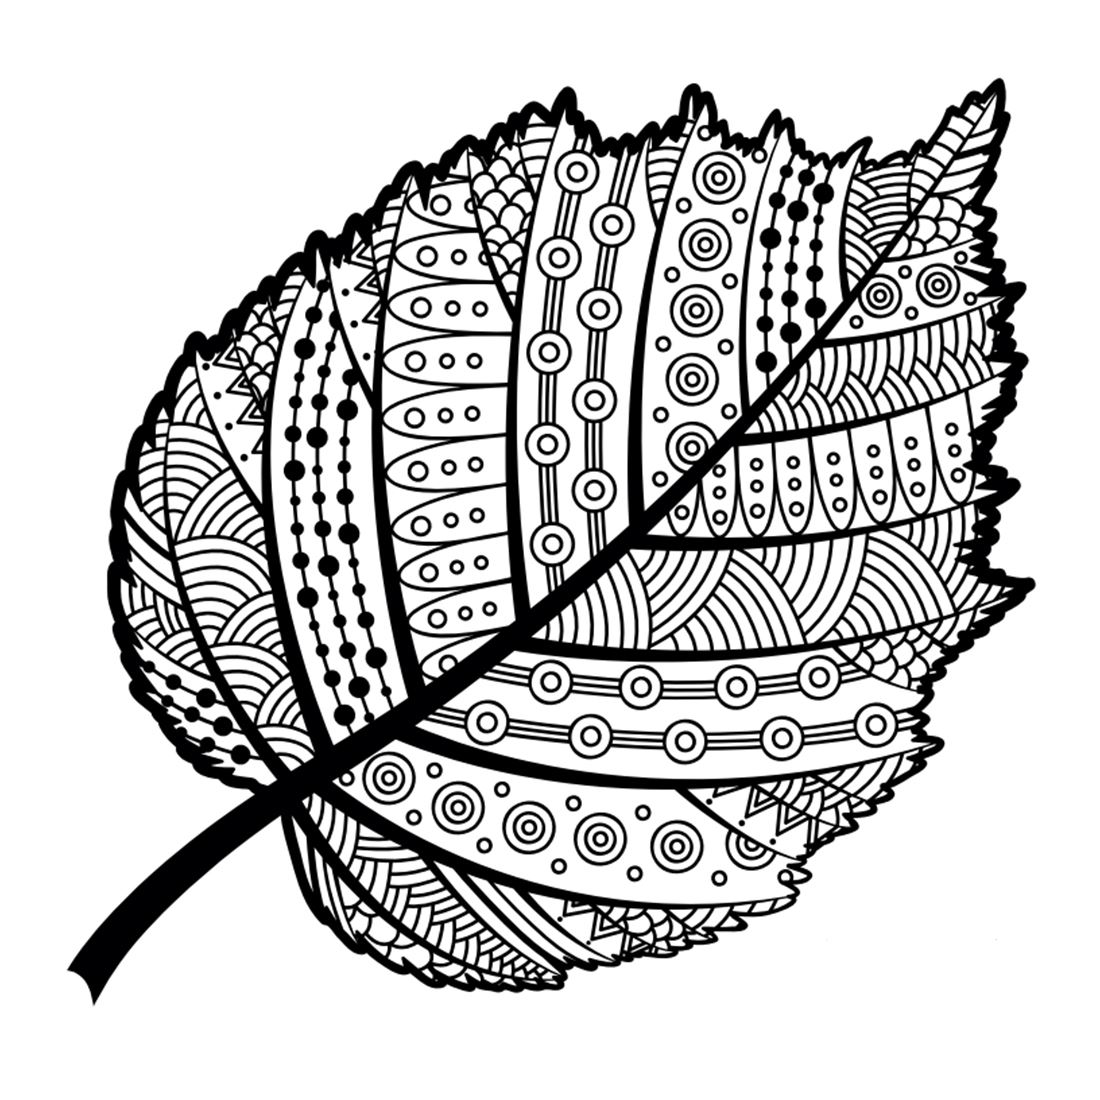 Coloring book drawing of a leaf